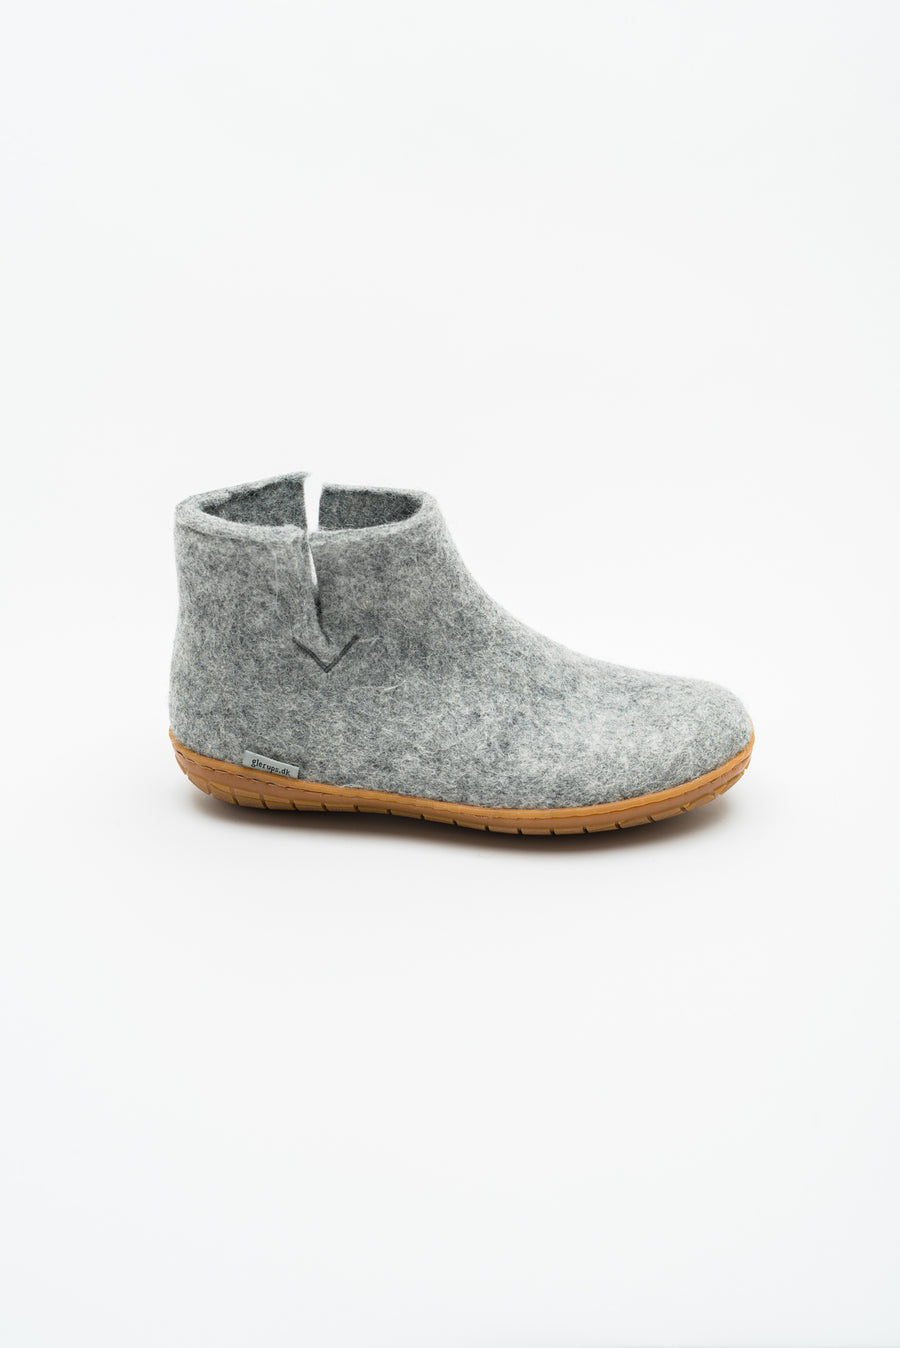 Men's Low Boot with Rubber Sole - Grey